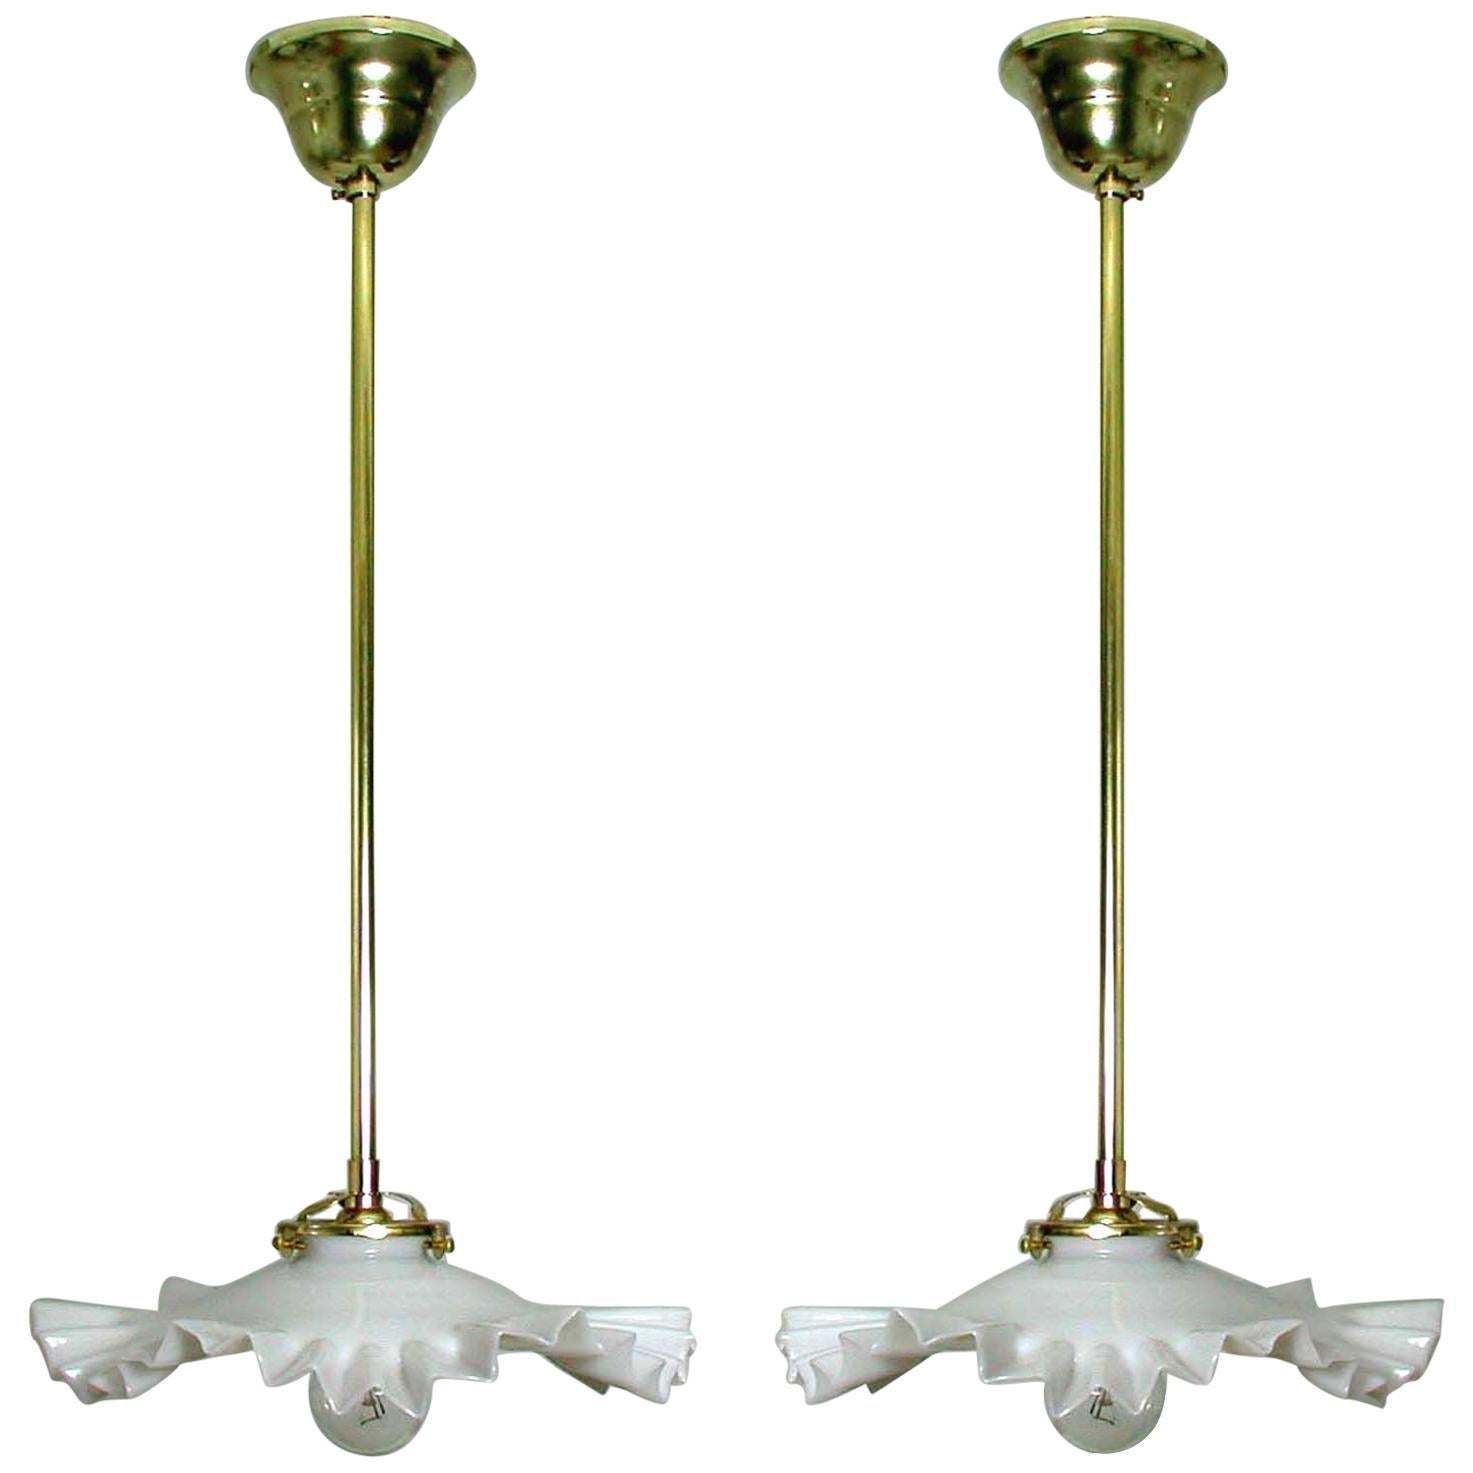 French Art Deco Opaline Glass and Brass Pendants, 1930s-1940s, Set of 2